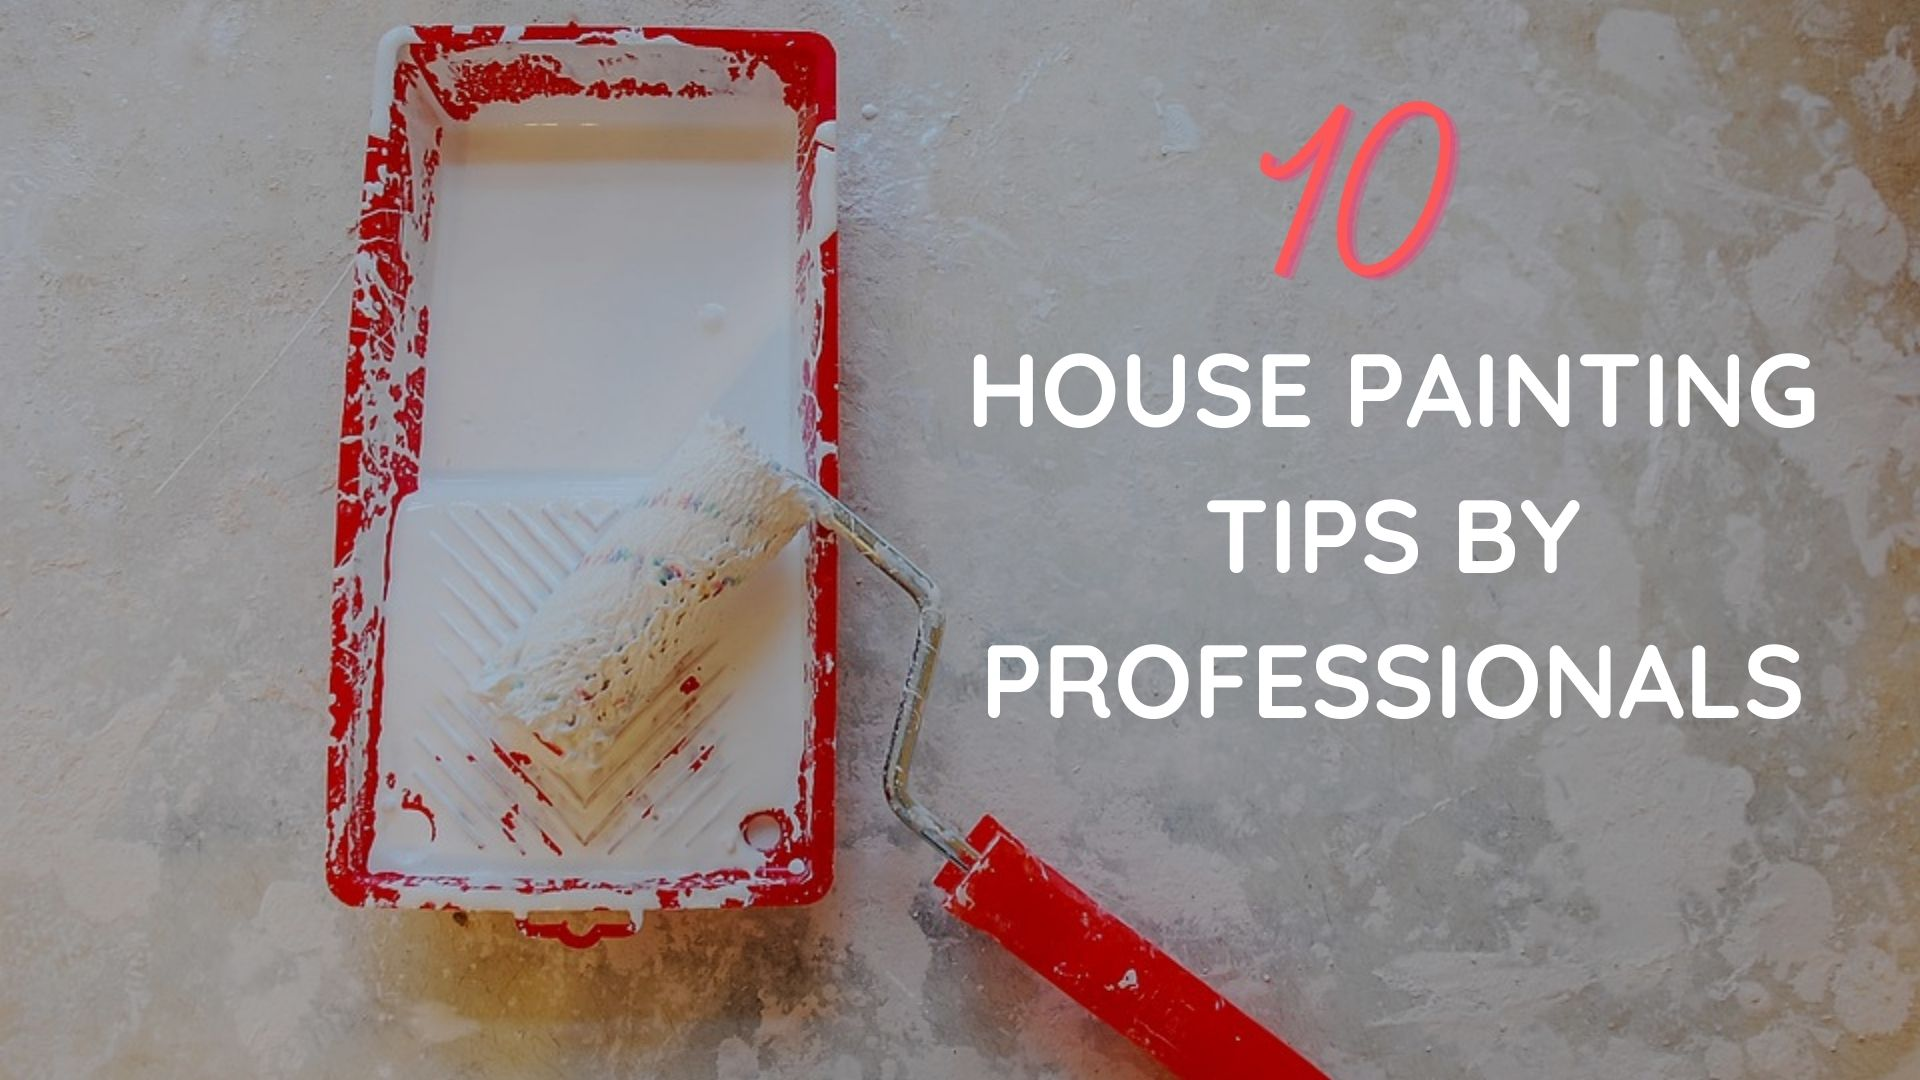 10 House Painting Tips by the Professionals